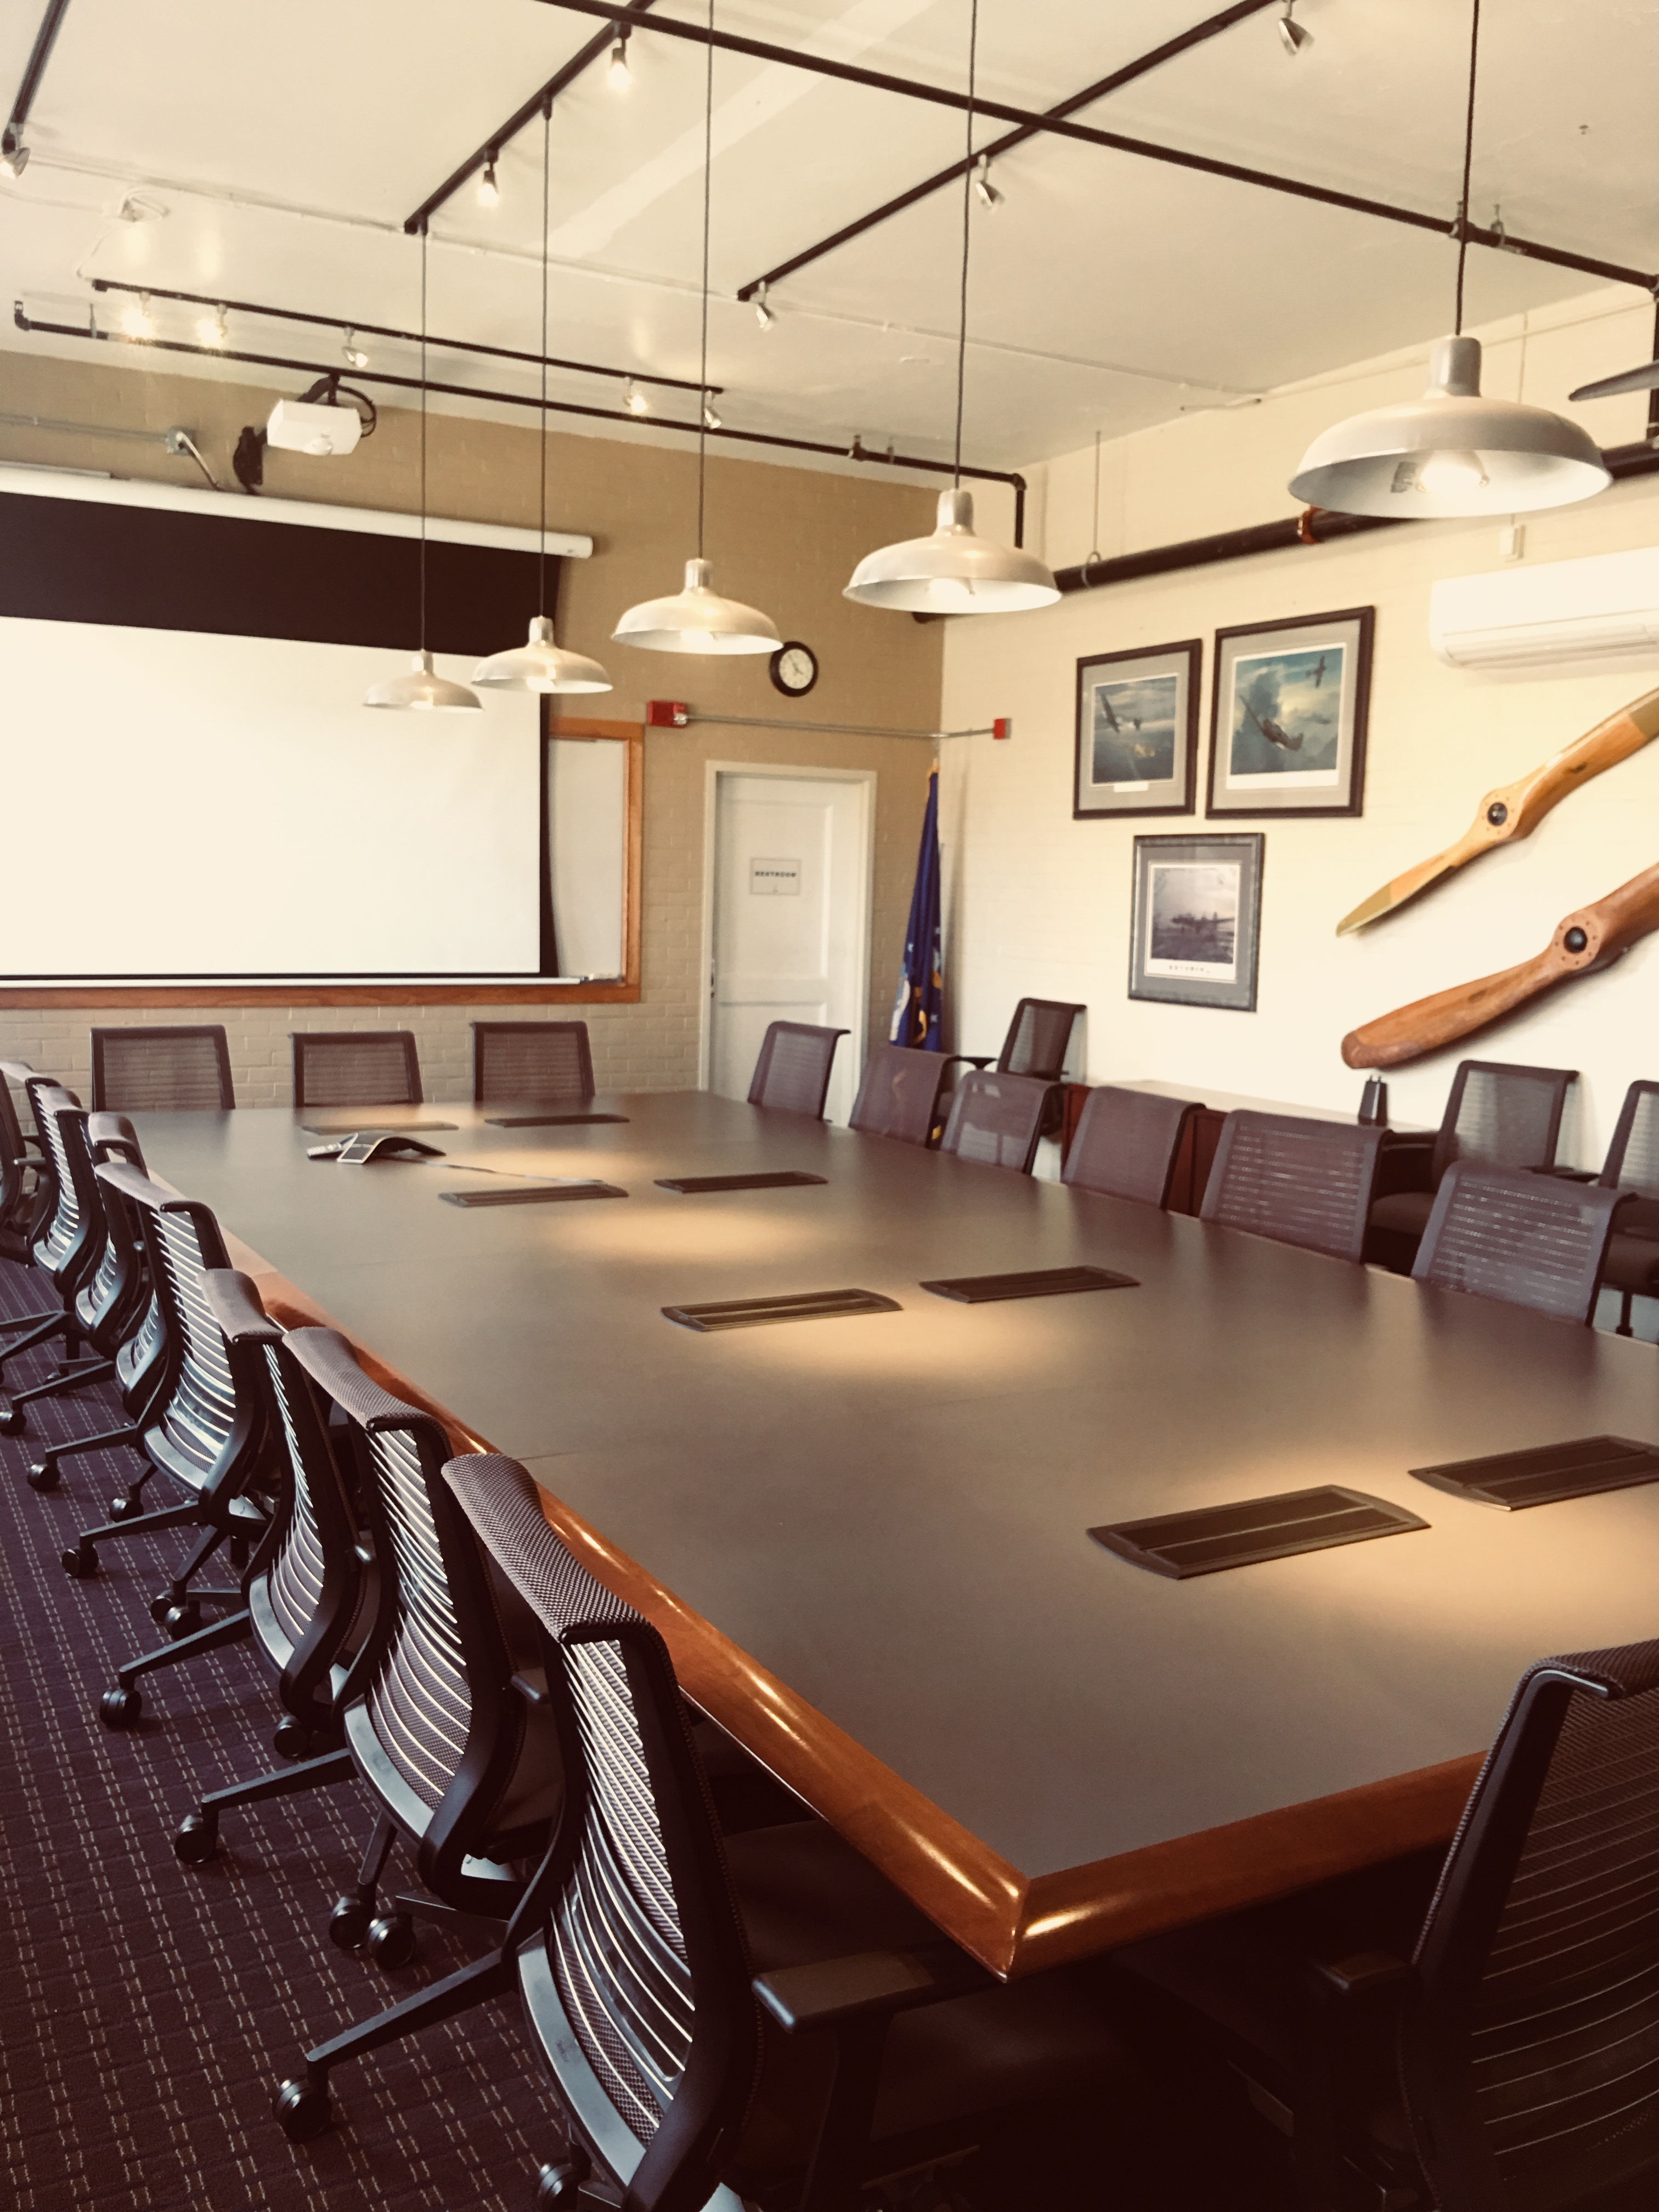 Photo #2 Corporate Board Room at Wings Over the Rockies Air & Space Museum